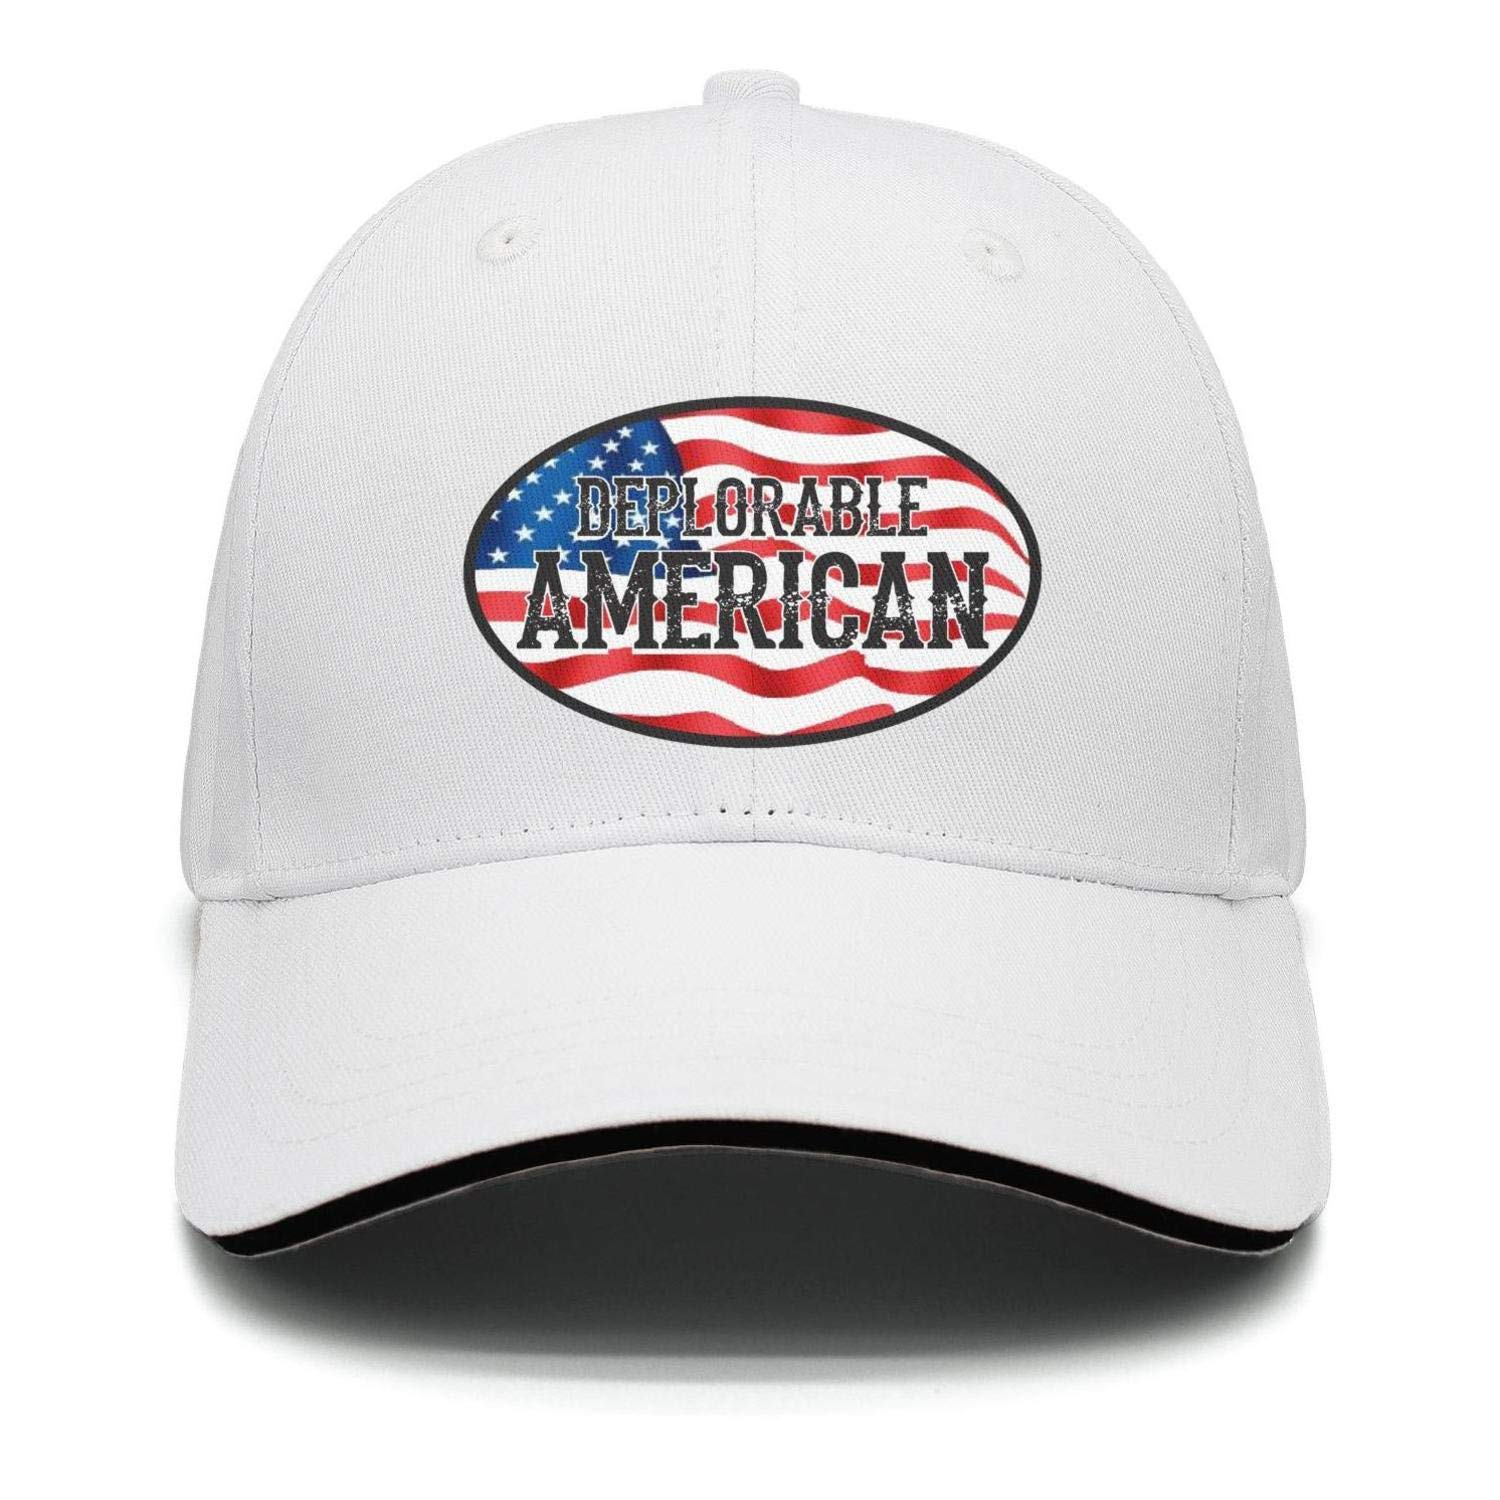 DEPLORABLE AMERICAN Trump Unisex Snap Backs Cap For Mens Or Womens